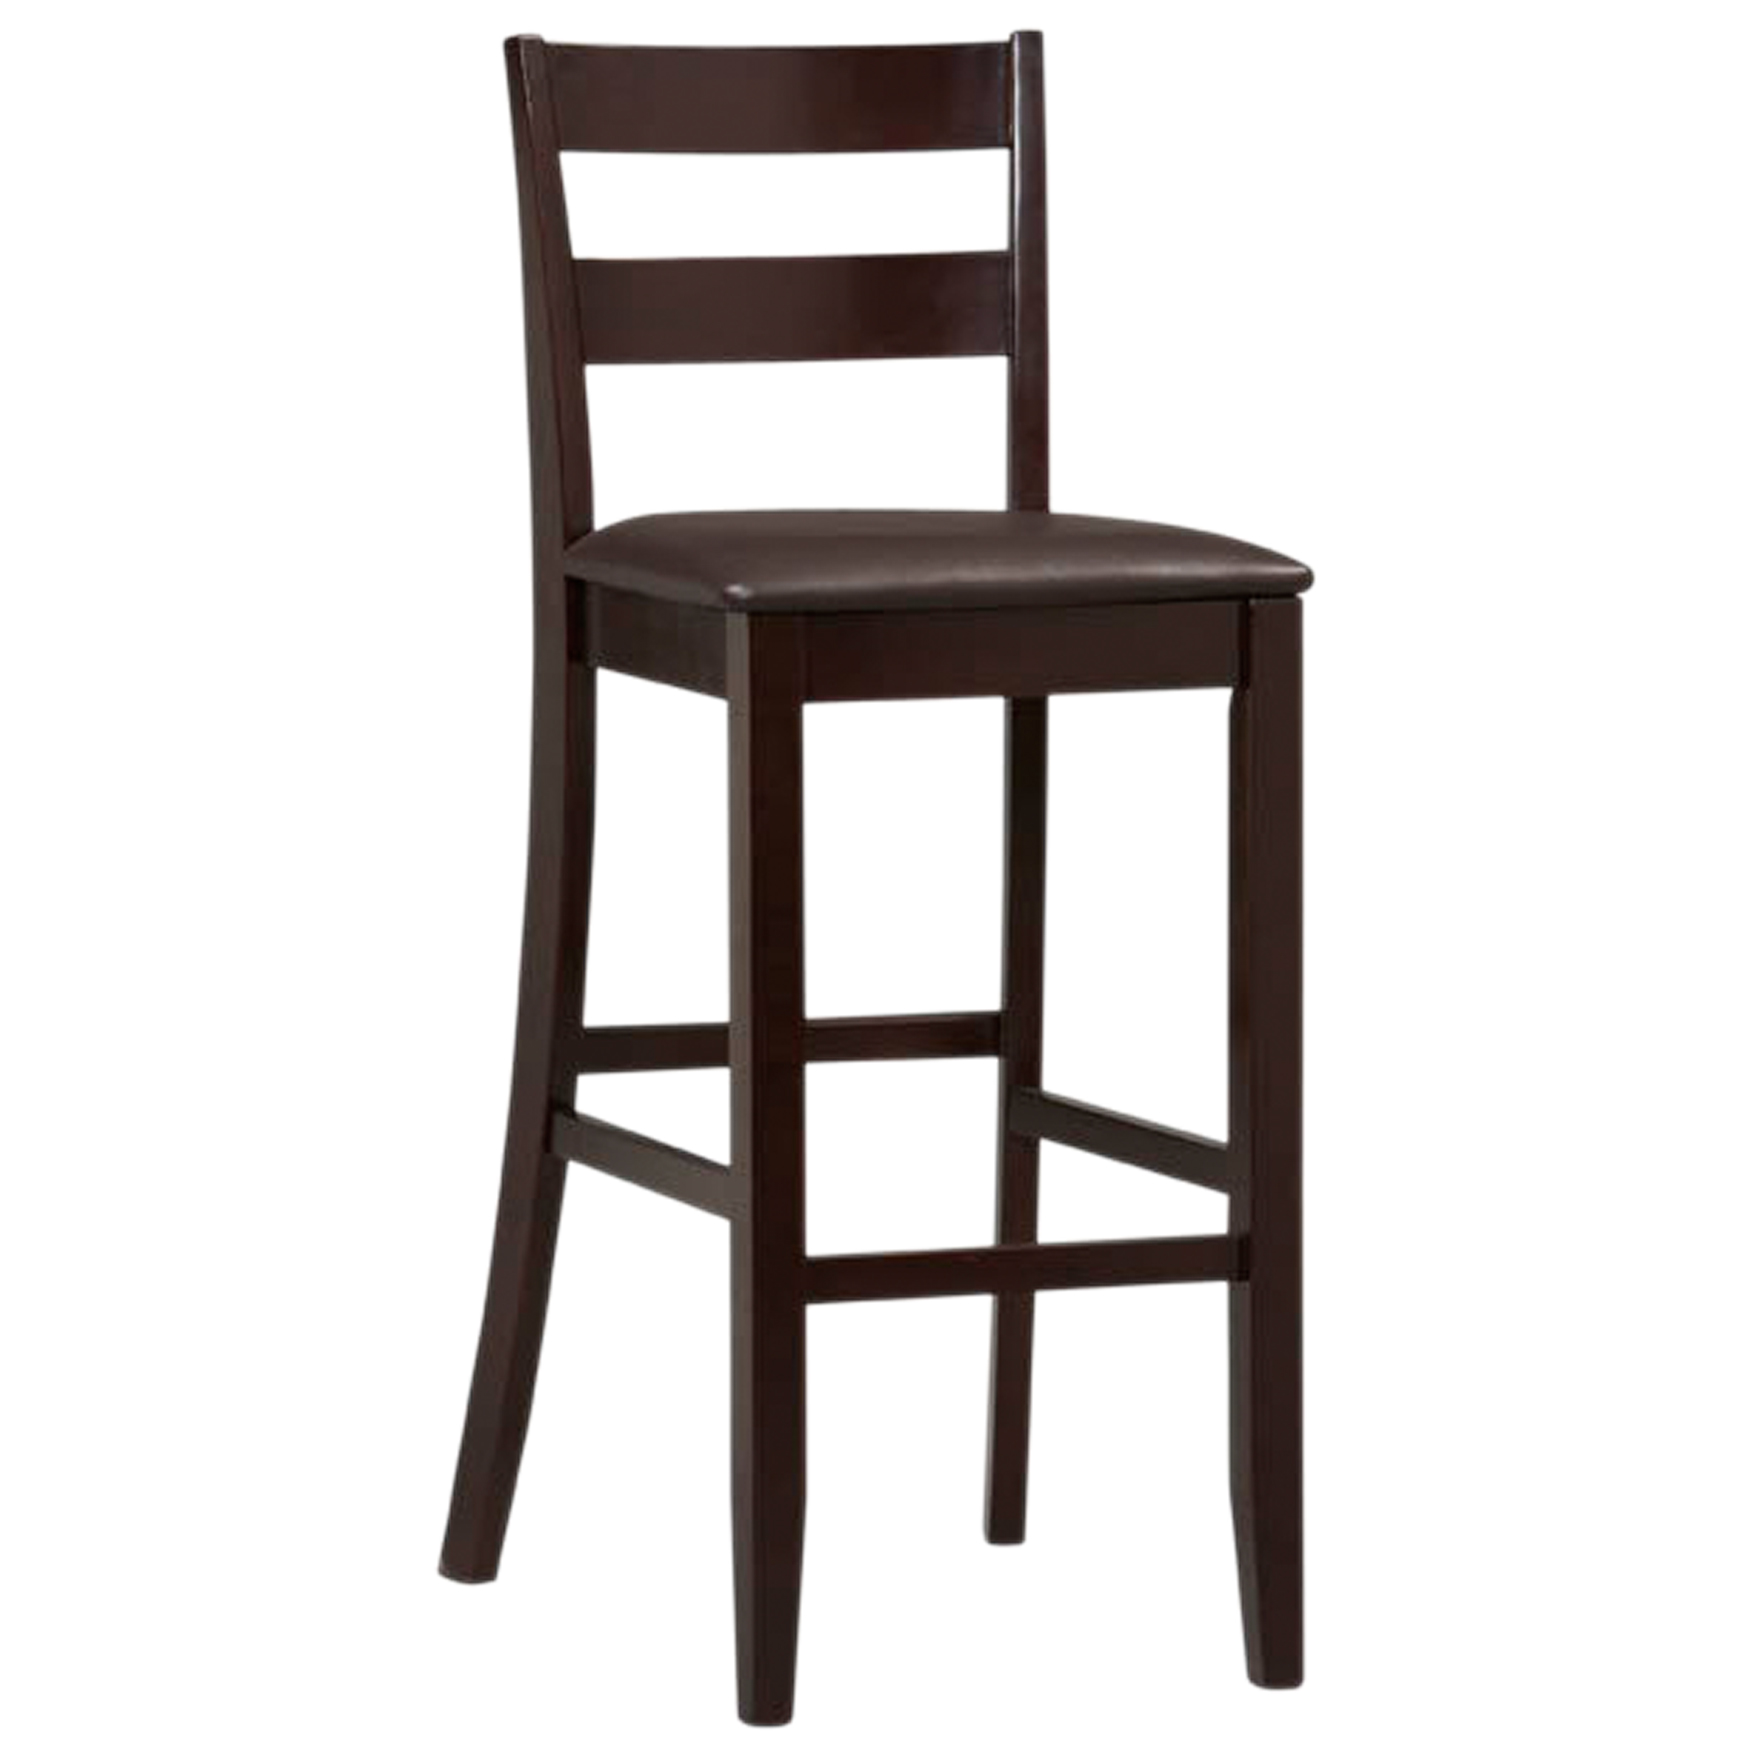 Triena Collection Soho Bar Stool, 30'H, ESPRESSO